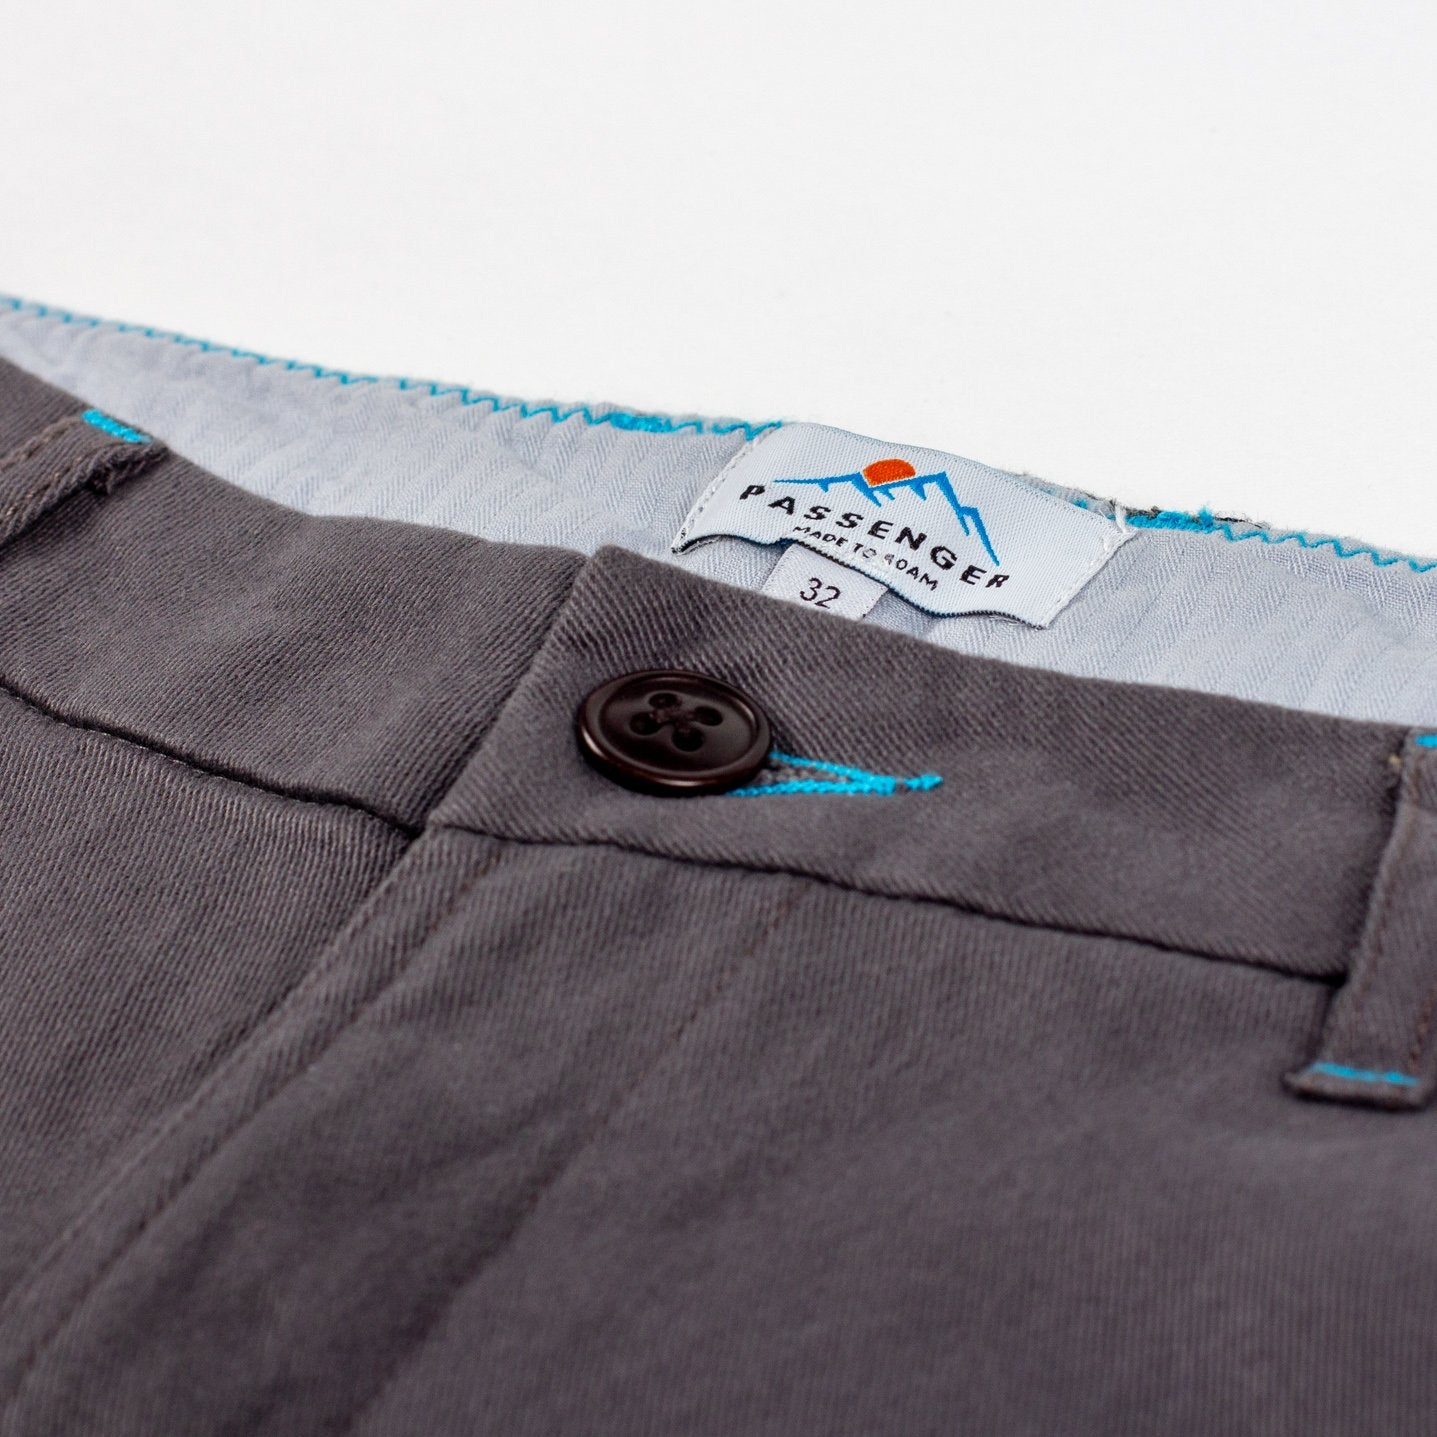 Offtrail Trousers - Grey image 6